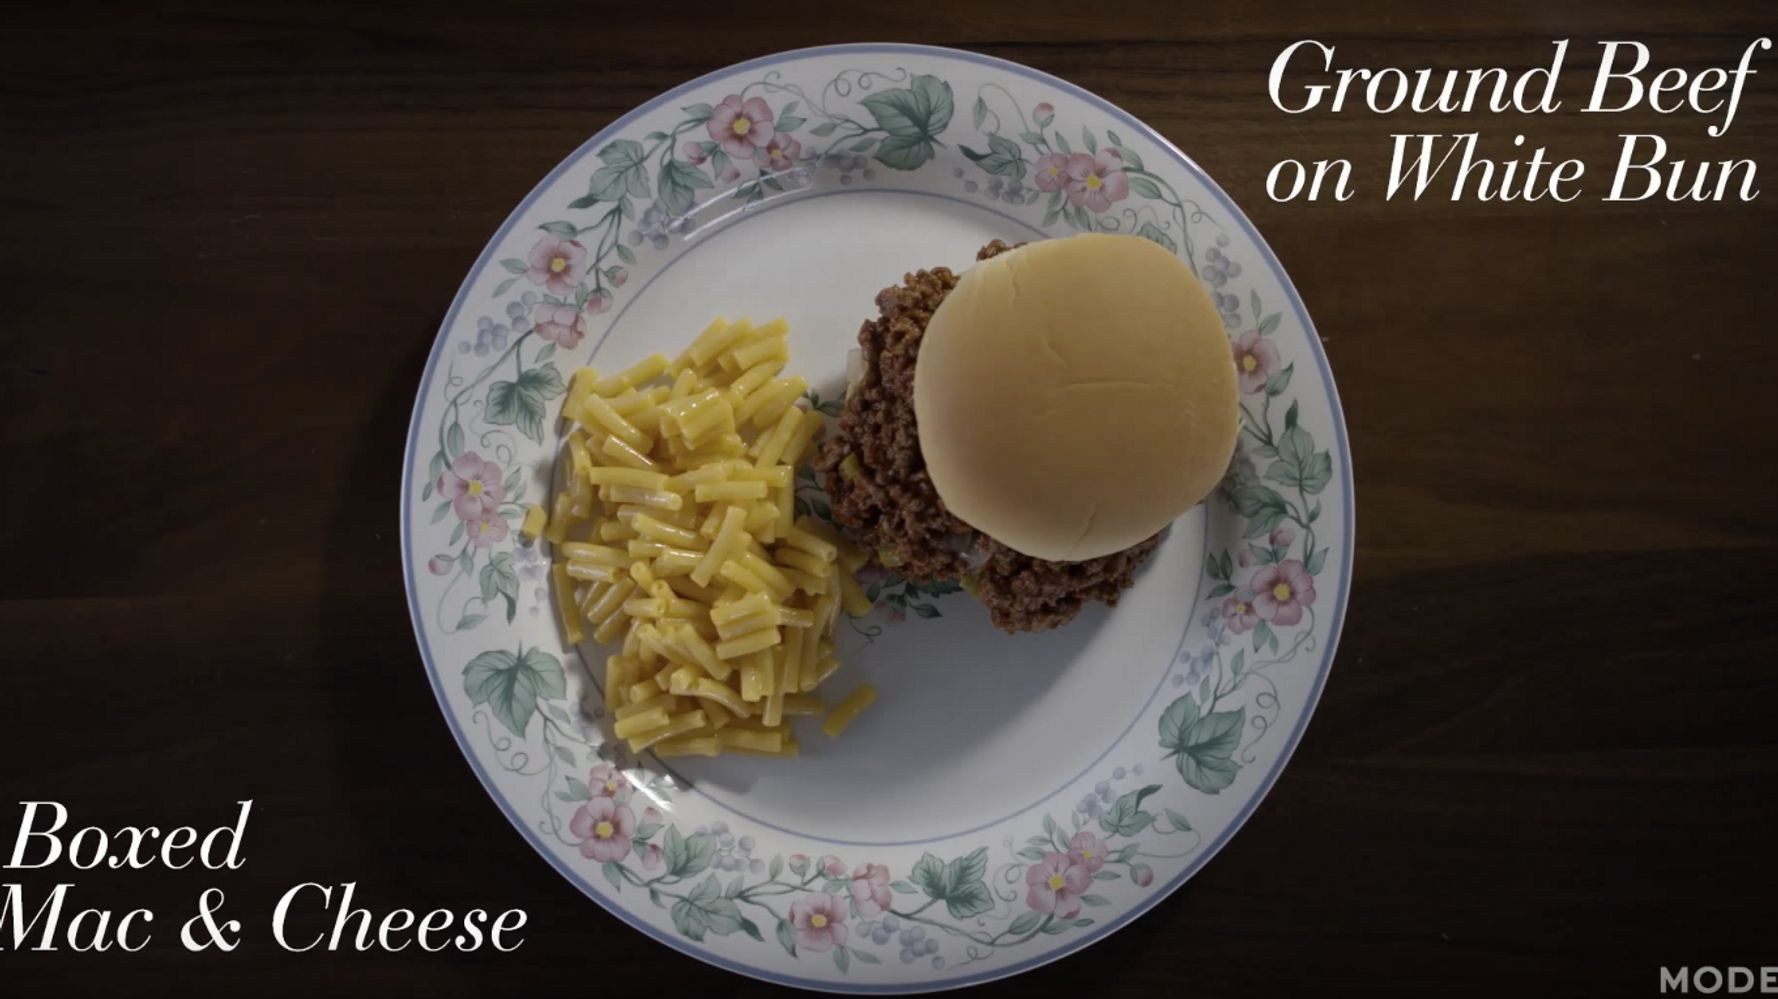 Watch 100 Years Of American Family Dinners In Under 3 Minutes